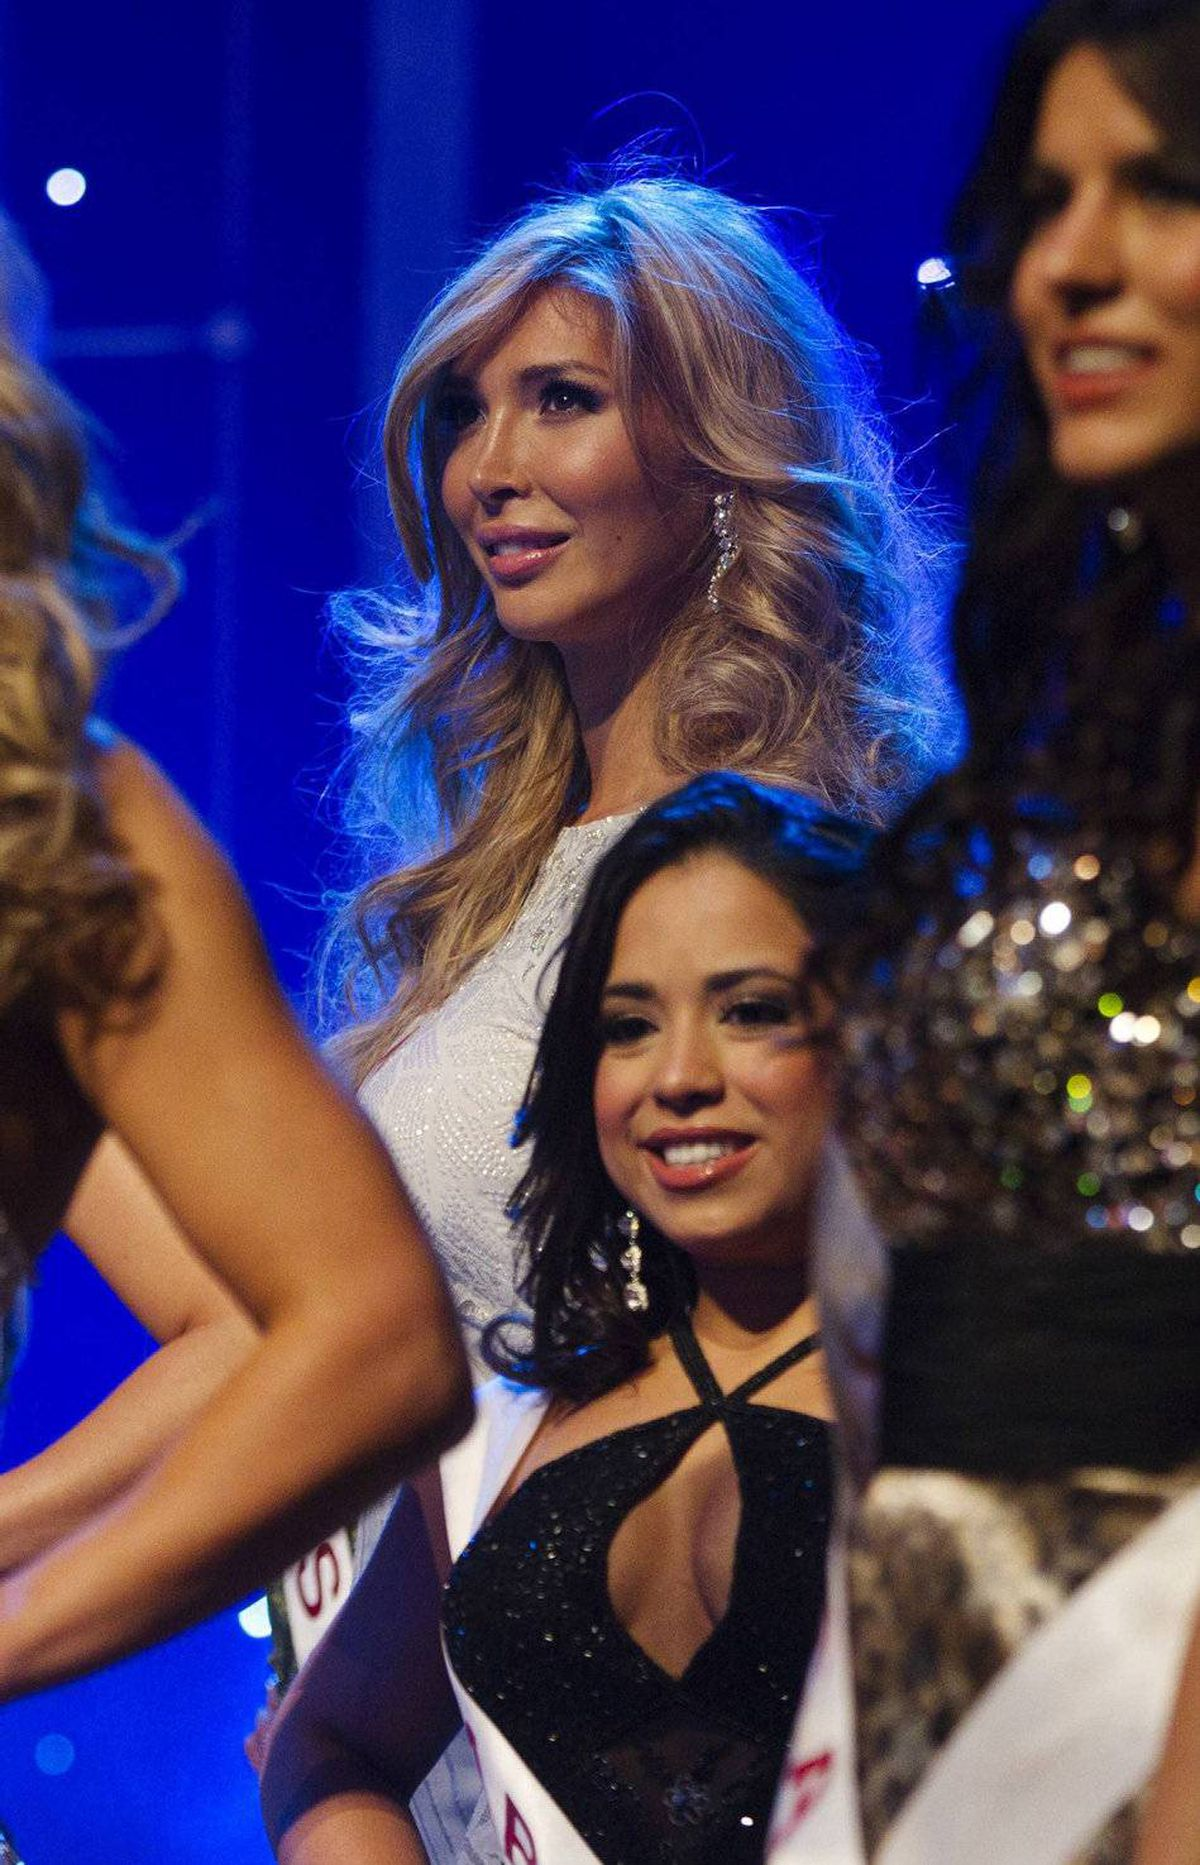 Jenna Talackova stands with other contestants at the Miss Universe Canada competition in Toronto on May 17, 2012.